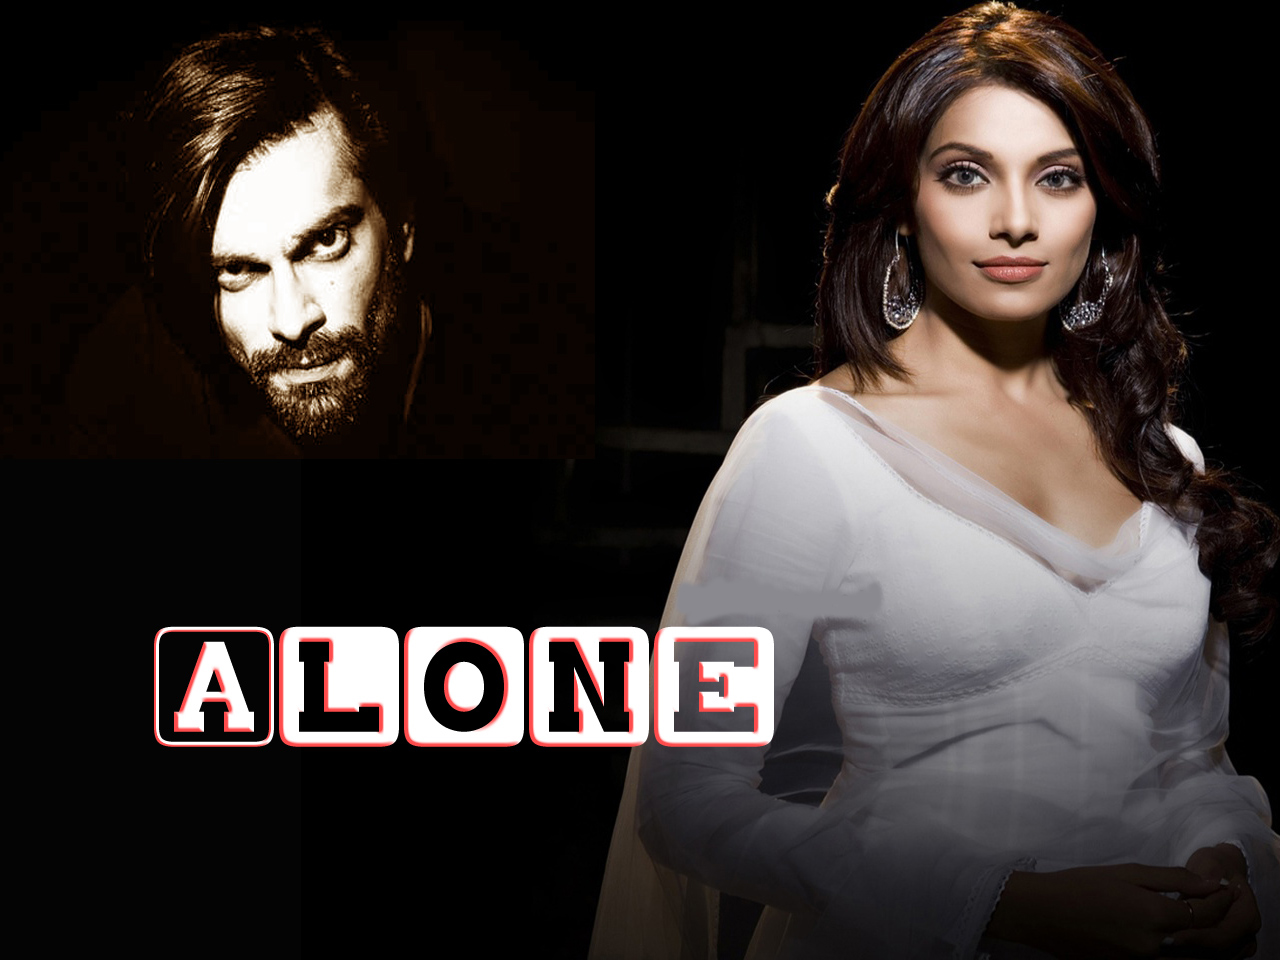 Alone-Movie-wallpaper-10